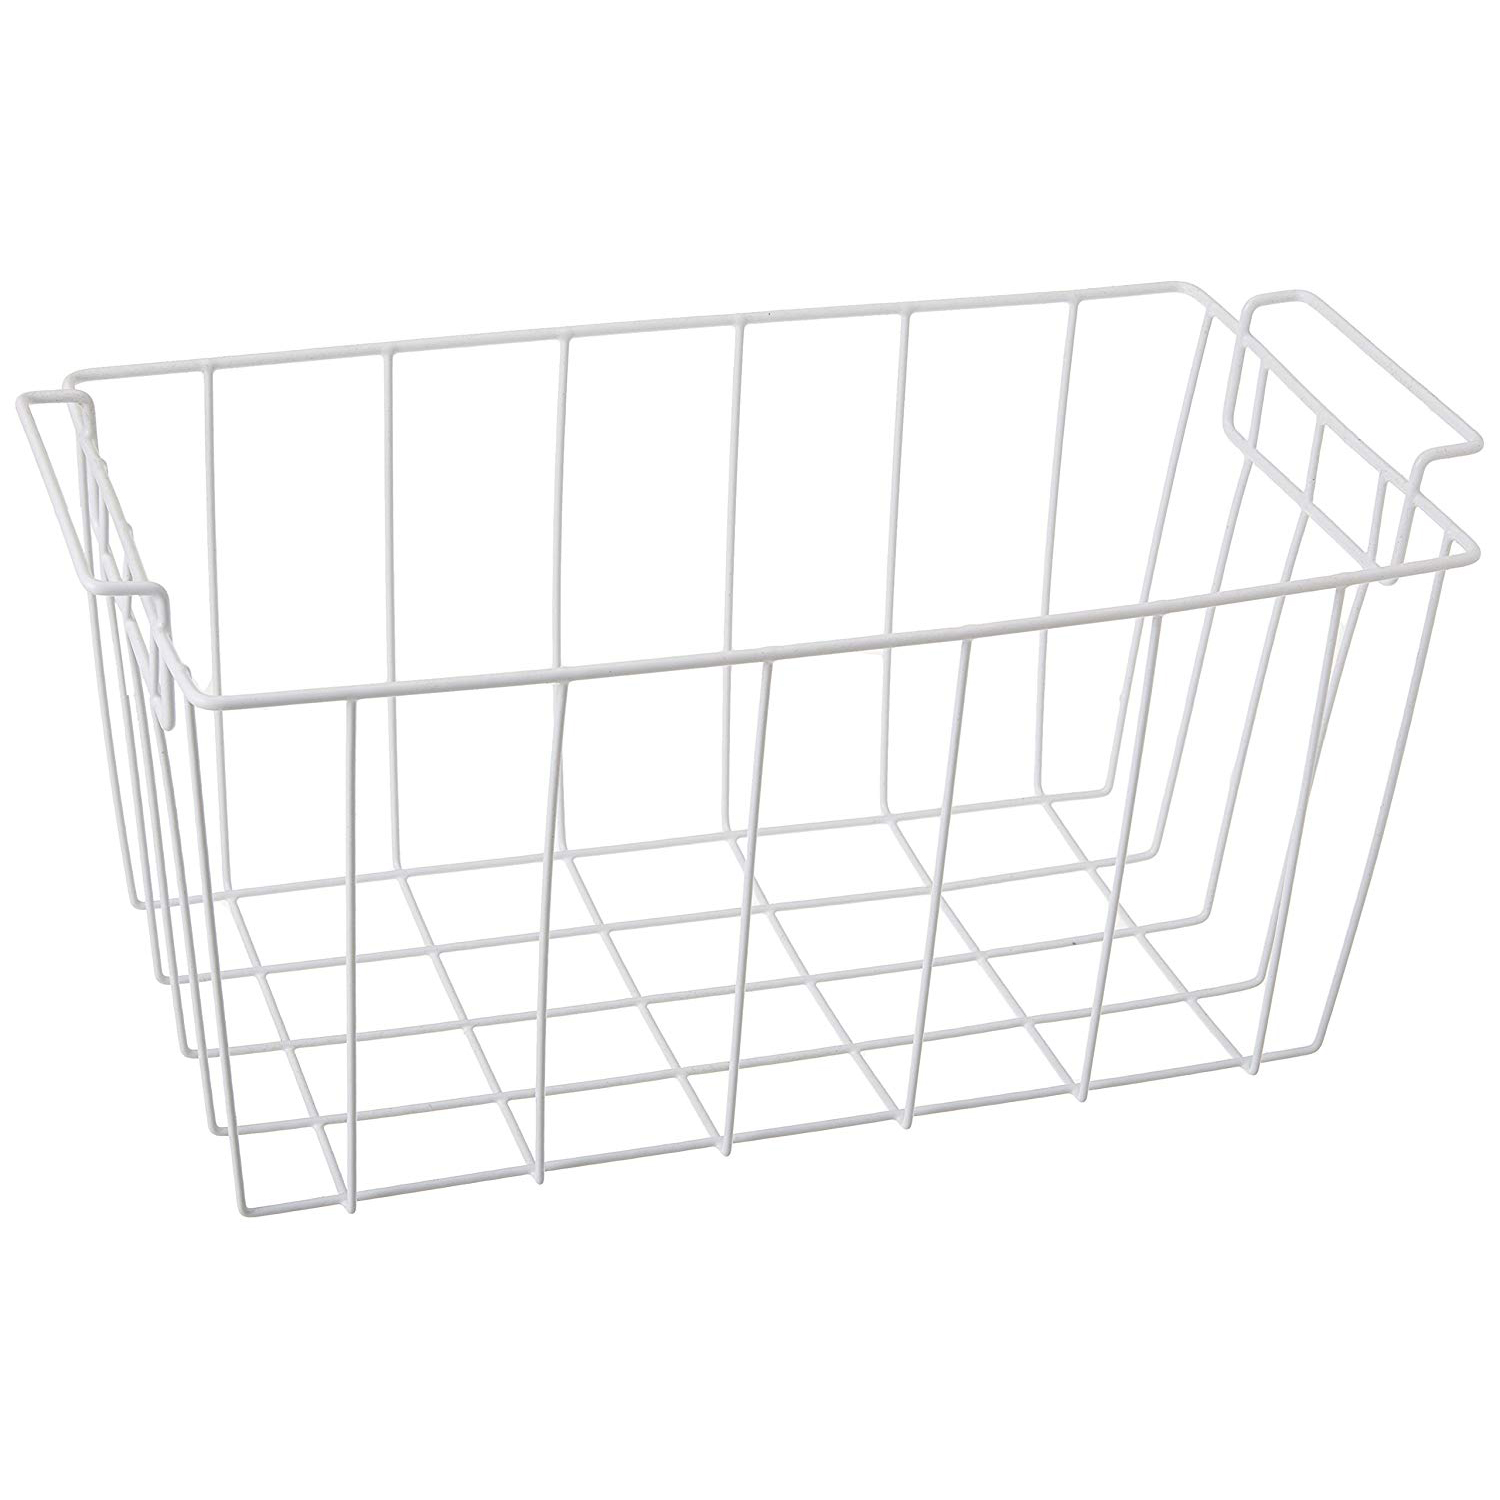 Kenmore 253.18502210 Wire Deep Freezer Basket (White